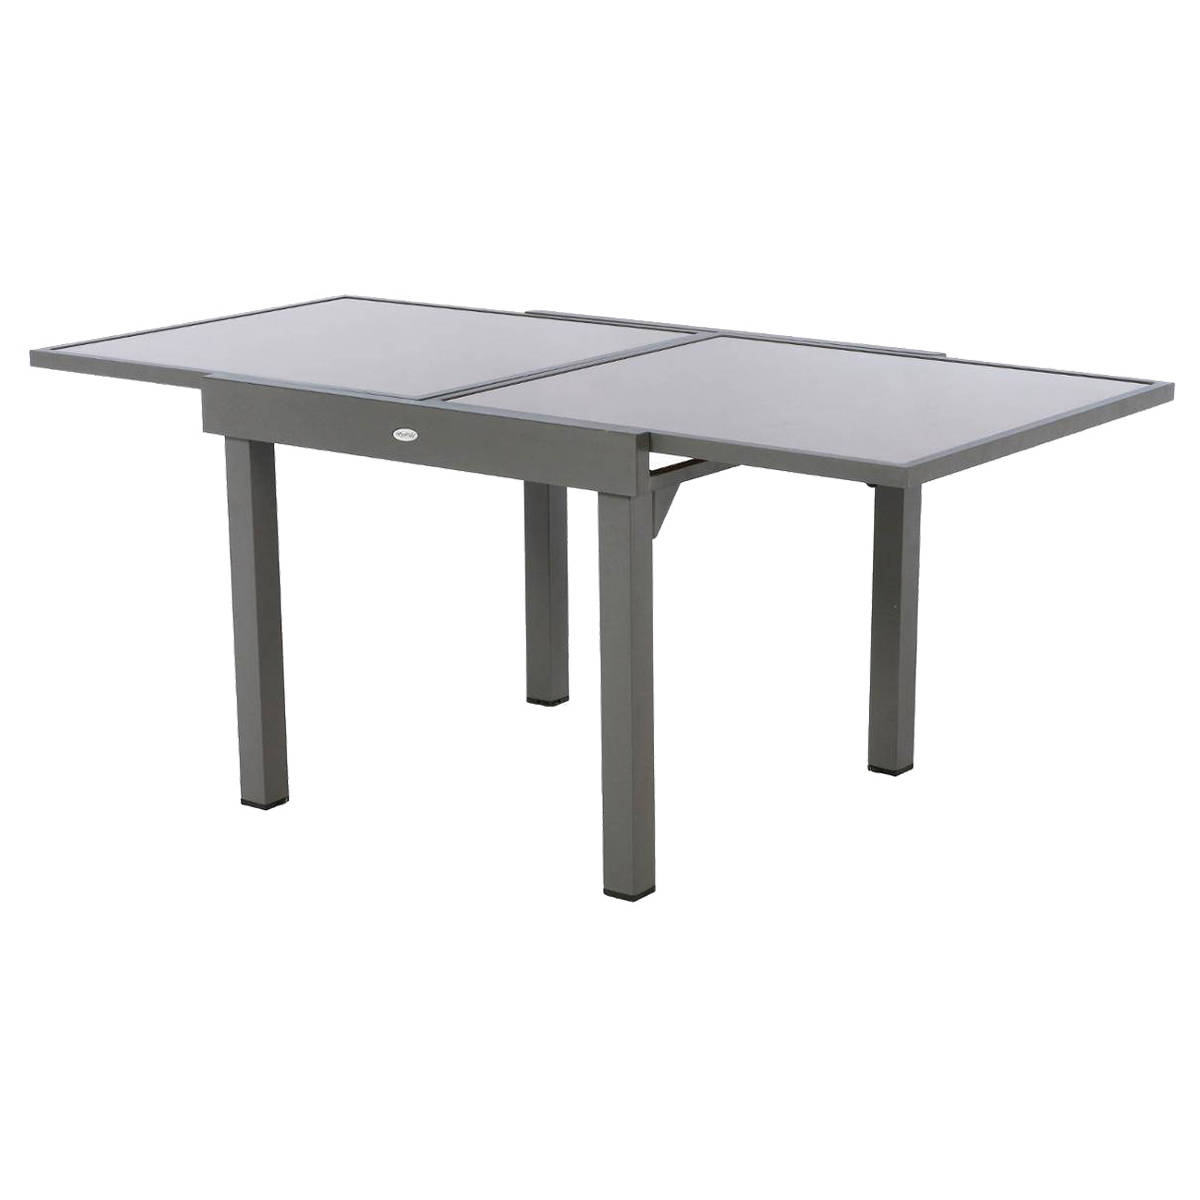 Tapis Exterieur Oogarden Table De Jardin Extensible Piazza Taupe And Mastic Hespéride